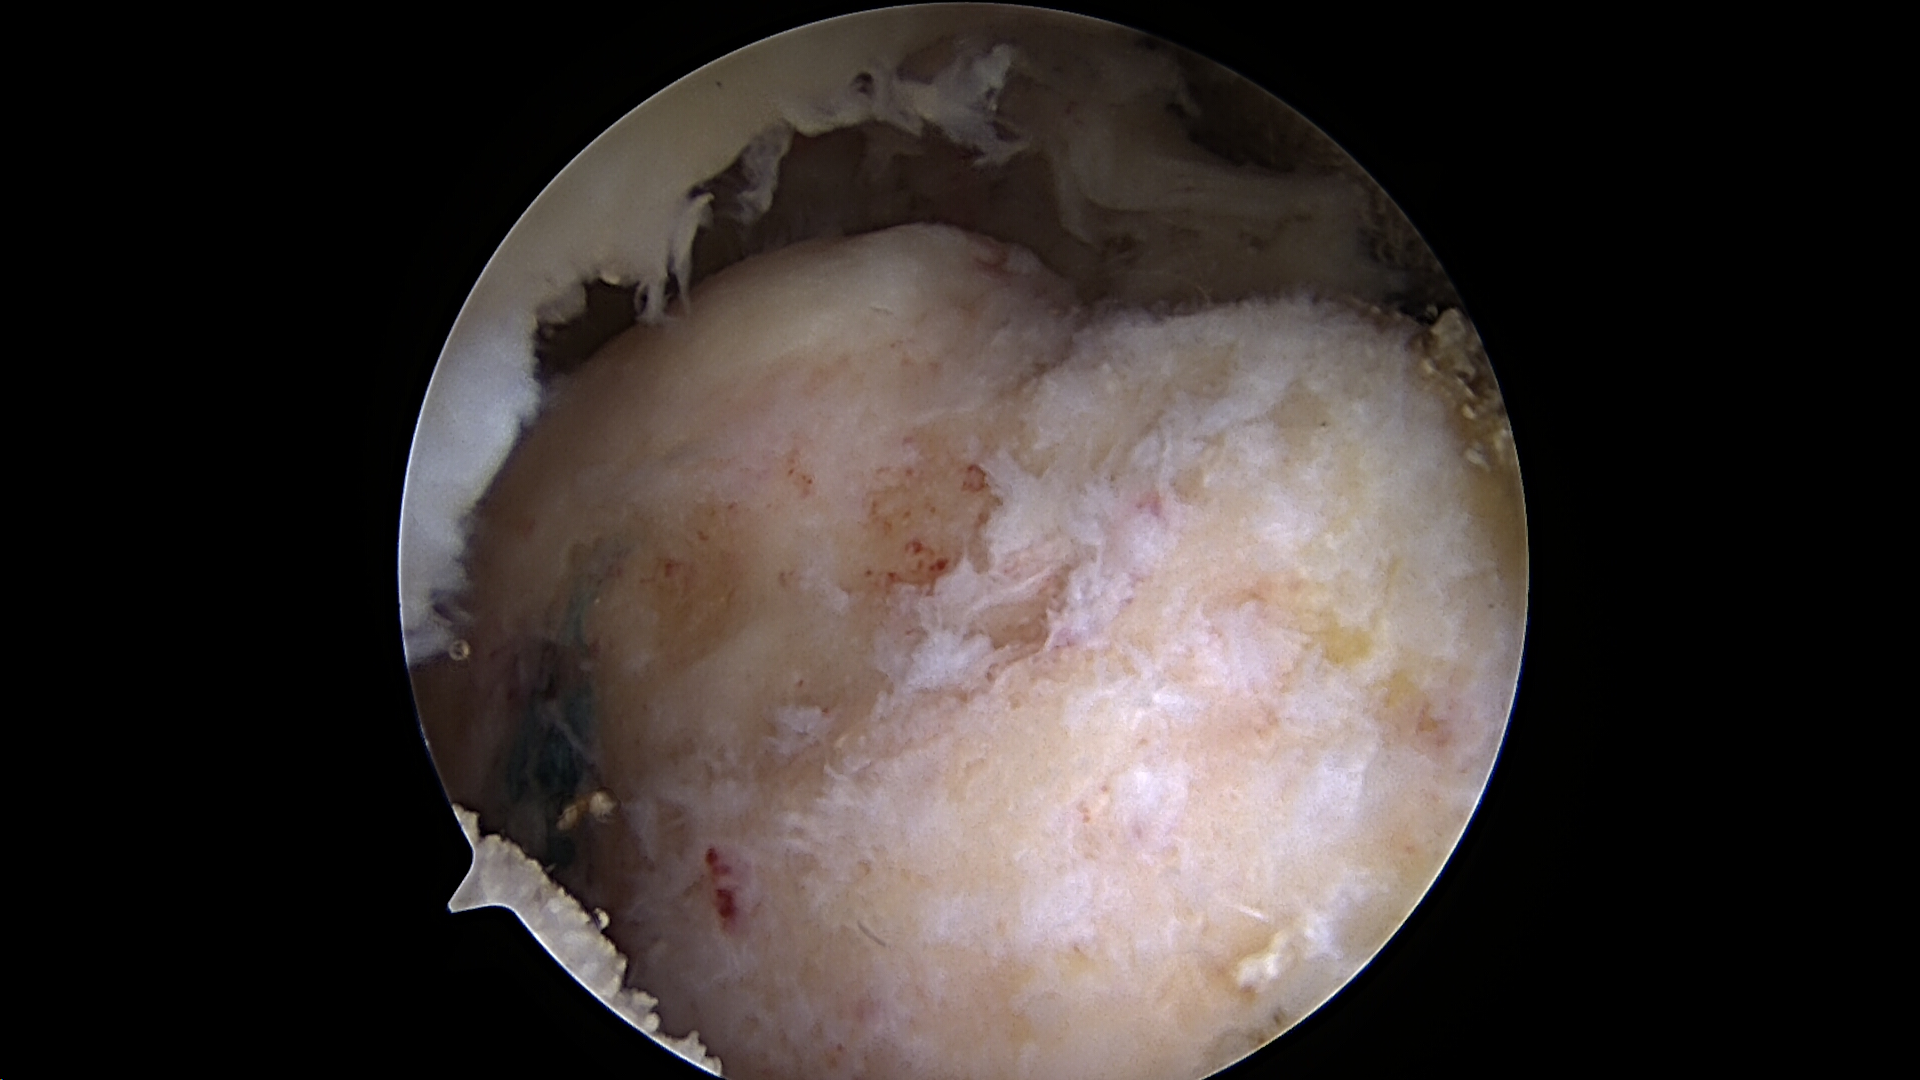 Massive retracted rotator cuff tear viewed from the posterior portal